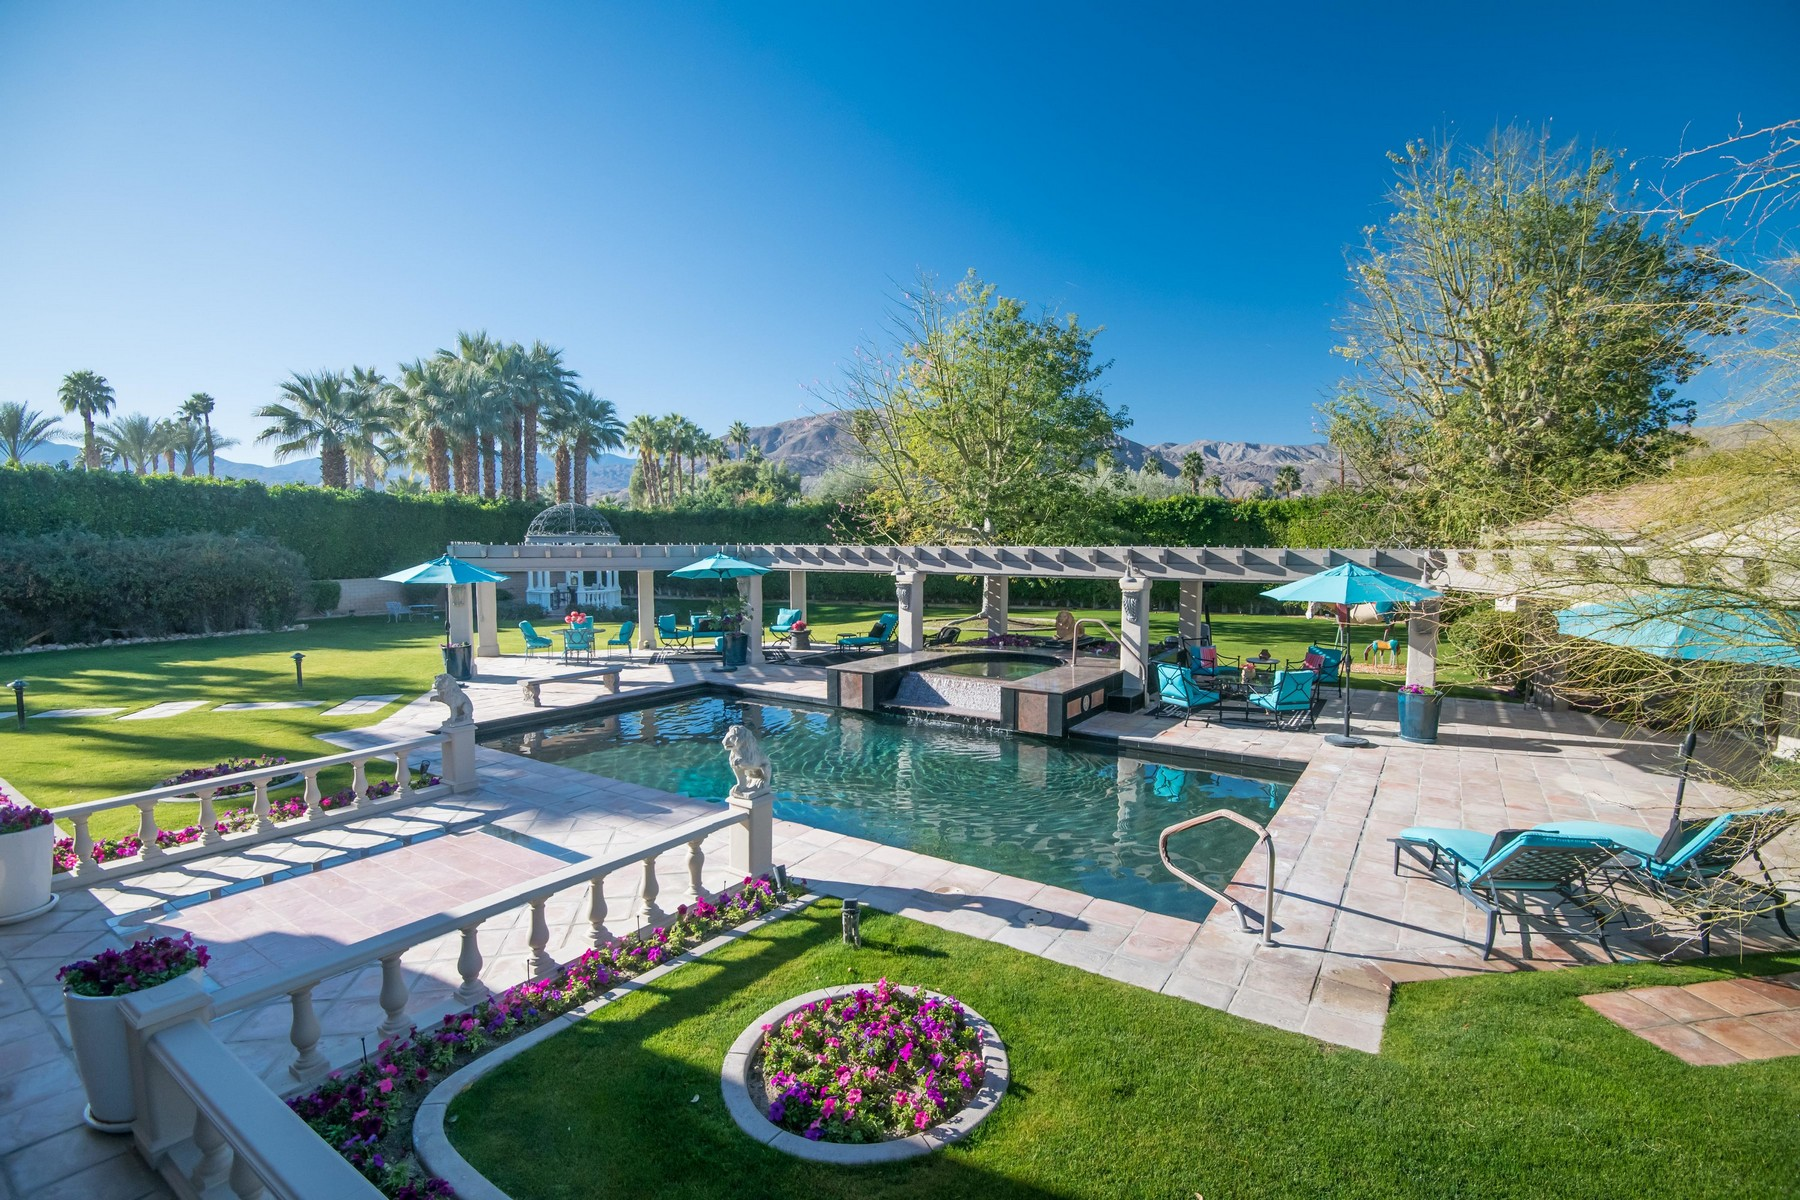 Single Family Homes for Sale at 29 Clancy Lane Estates Rancho Mirage, California 92270 United States